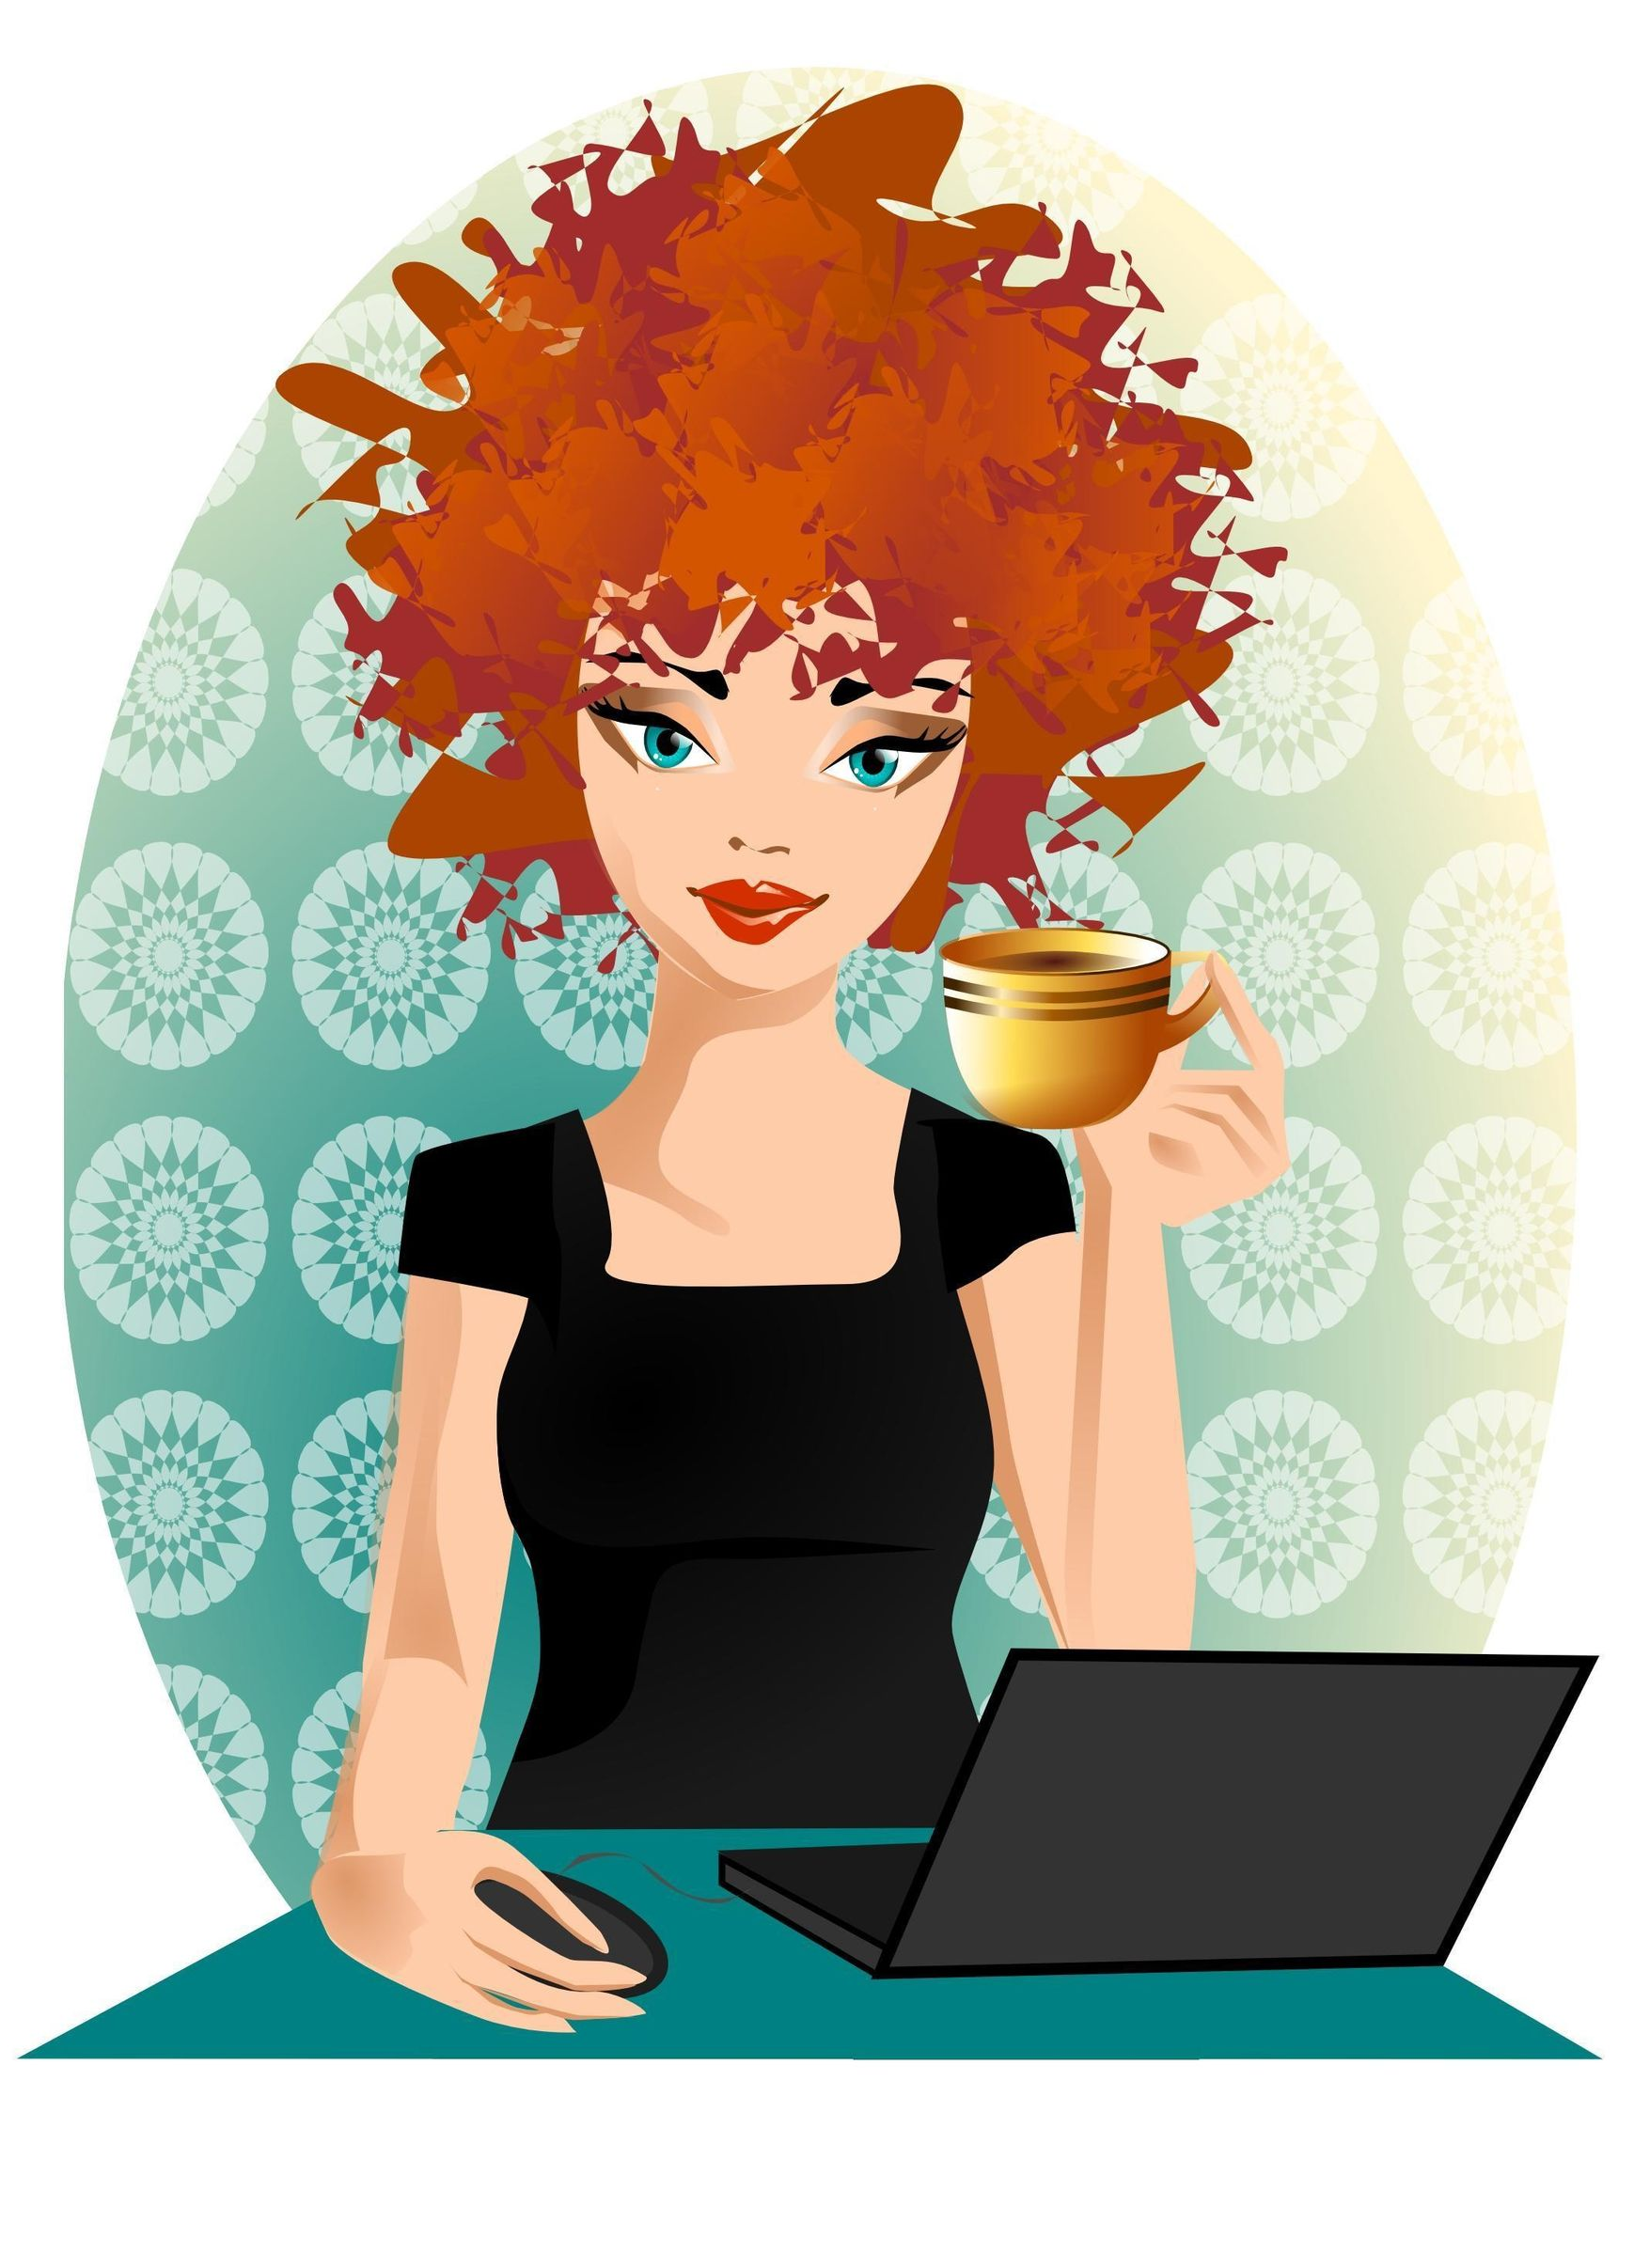 Red Head with computer